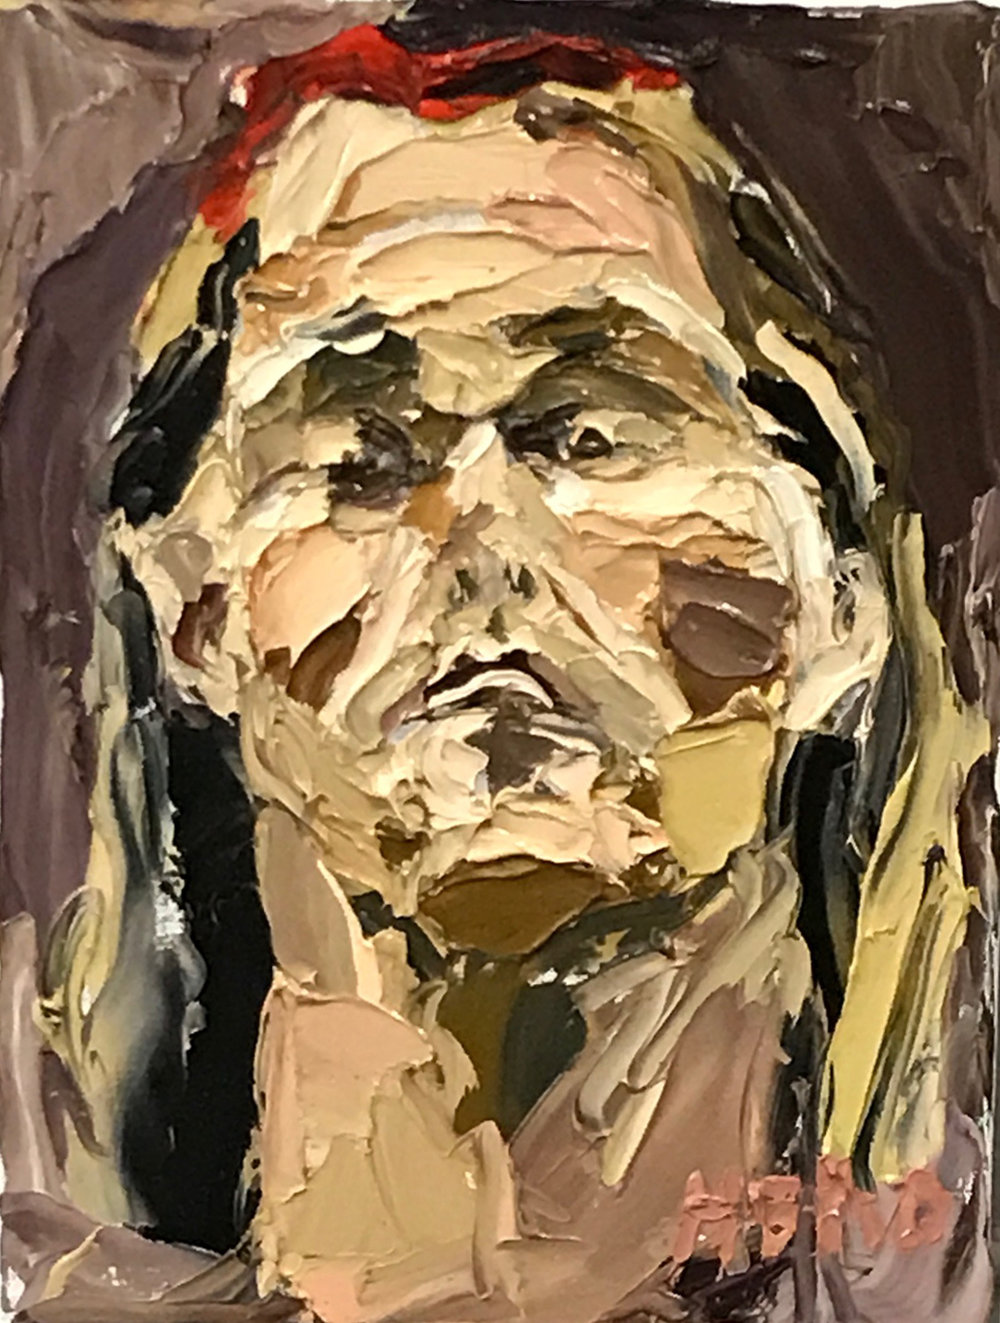 Nick Herd, Self Portrait III oil on canvas, 30 x 40 cm, available